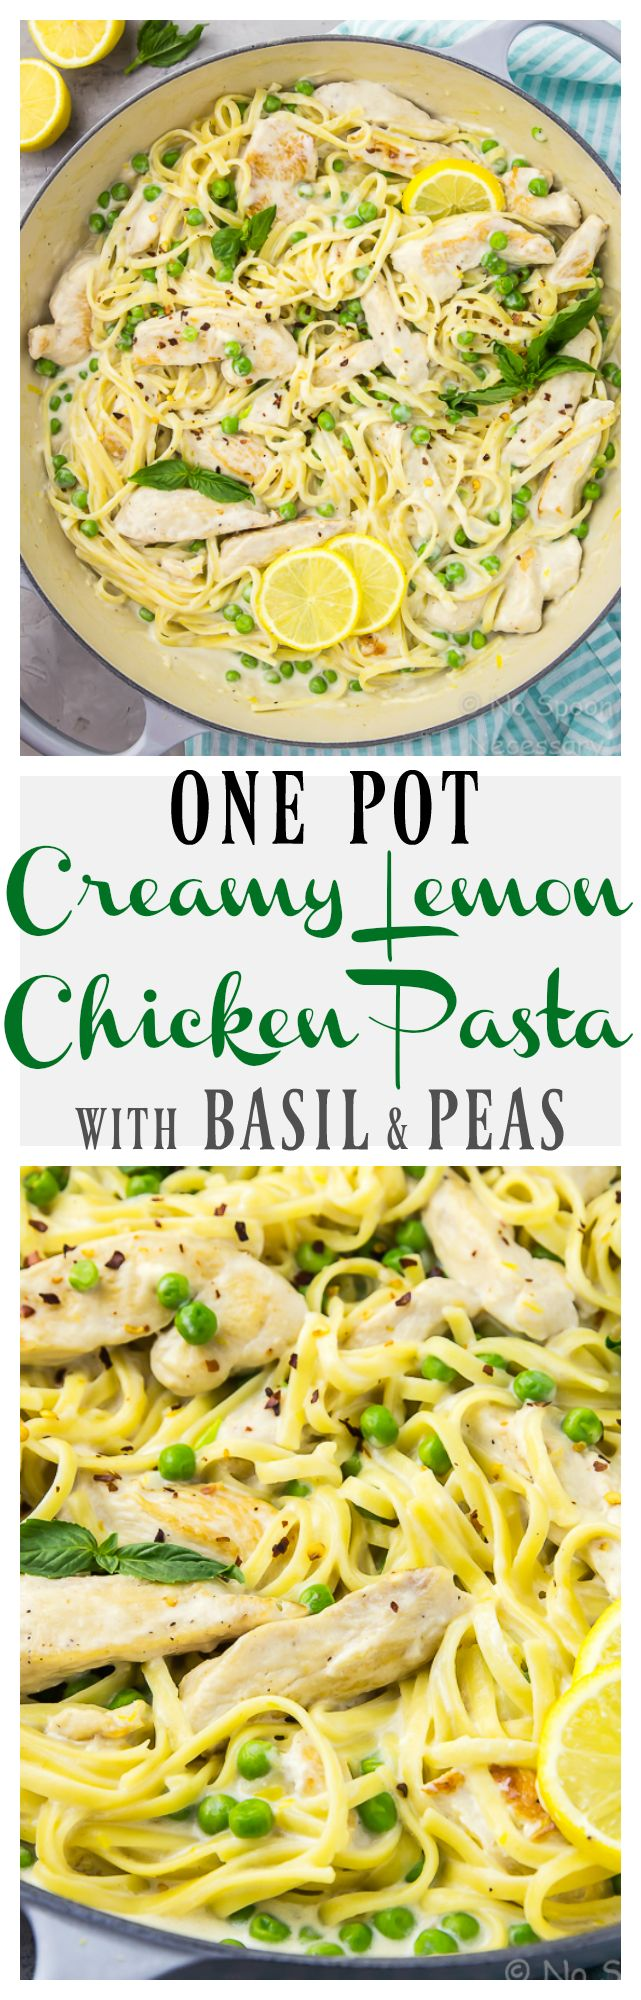 One Pot Creamy Lemon Chicken Pasta with Basil & Peas - ready, from prep to finish, in 30 minutes or less! #OnePot #30minutemeals